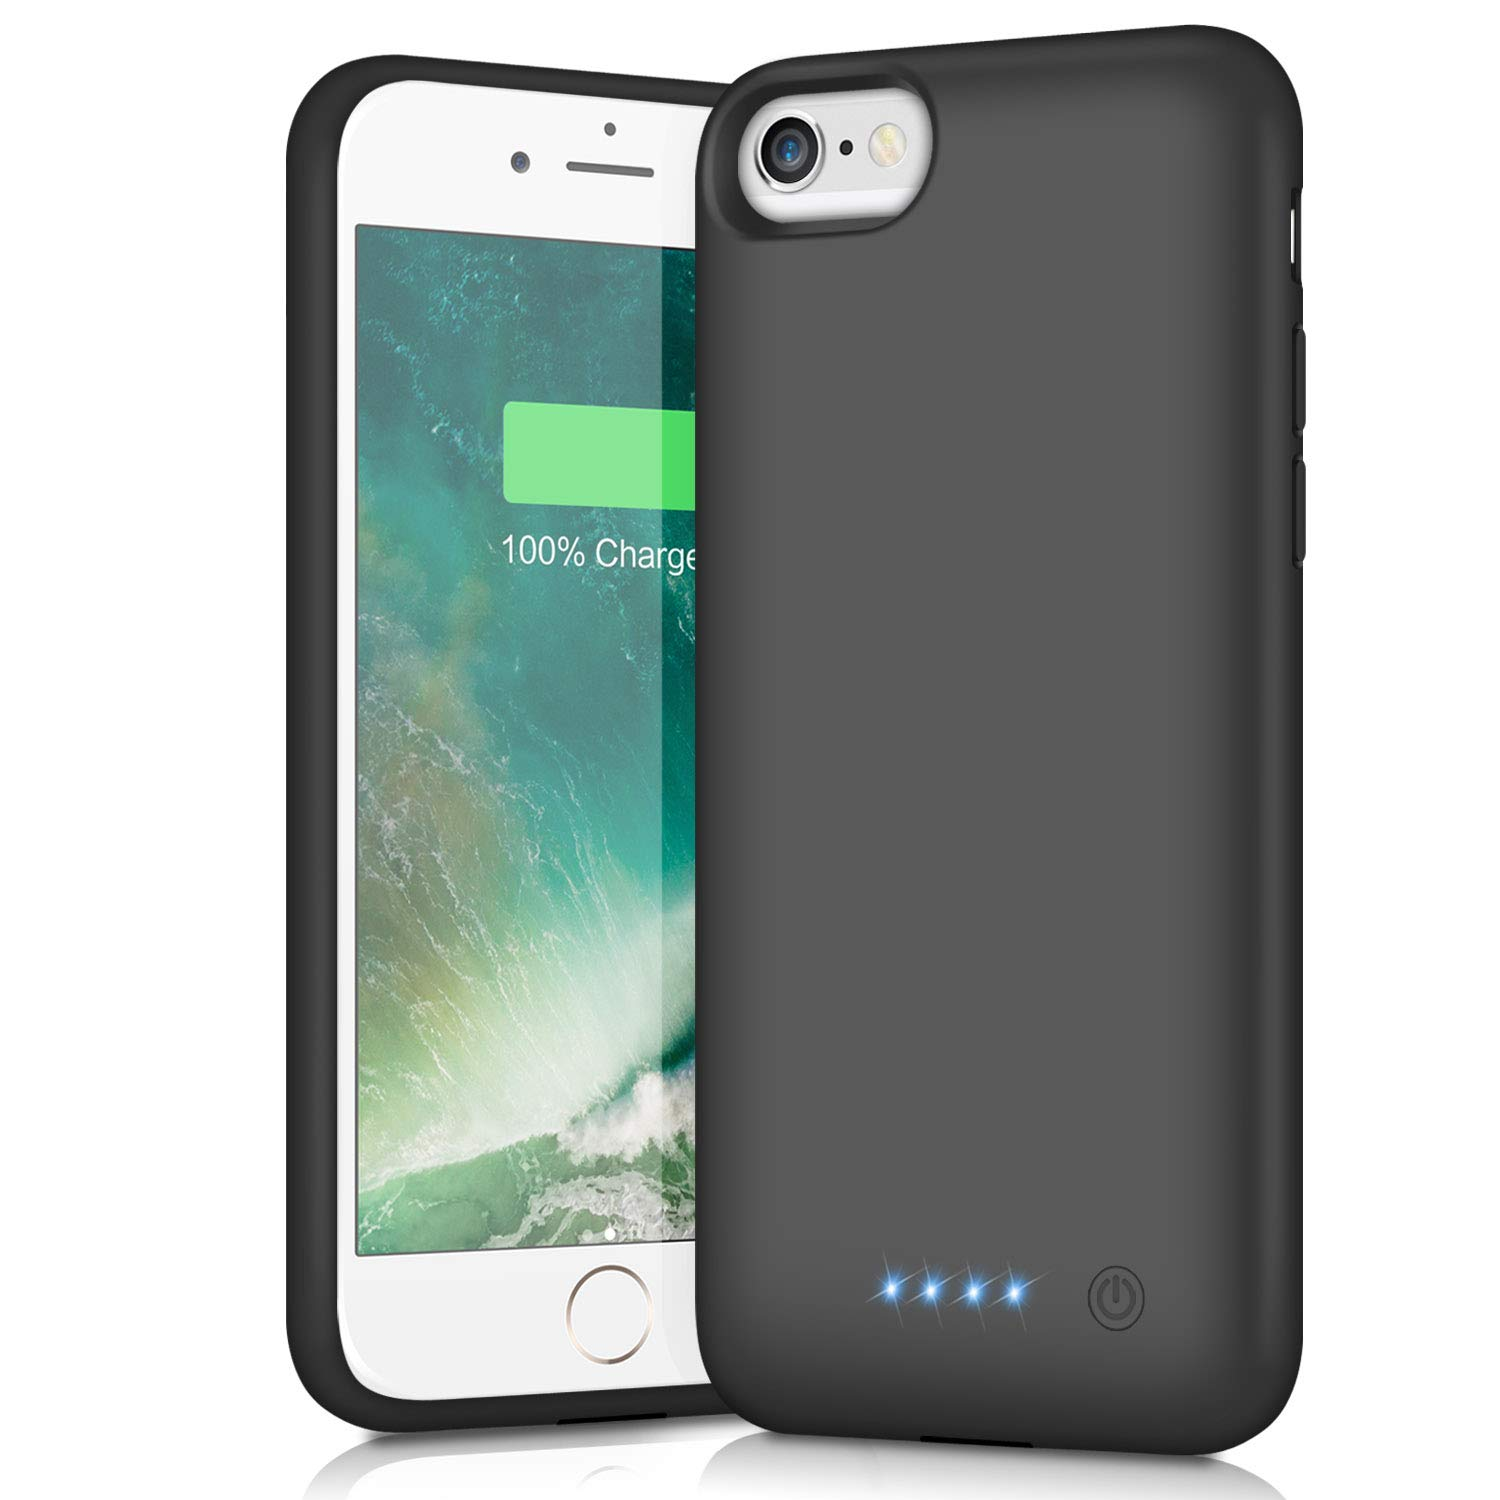 Battery Case for iPhone 6s 6, Xooparc 6000mAh Protective Portable Charging Case Rechargeable Extended Battery Pack for Apple iPhone 6/6s(4.7' ) Backup Power Bank Cover - Black youjupin